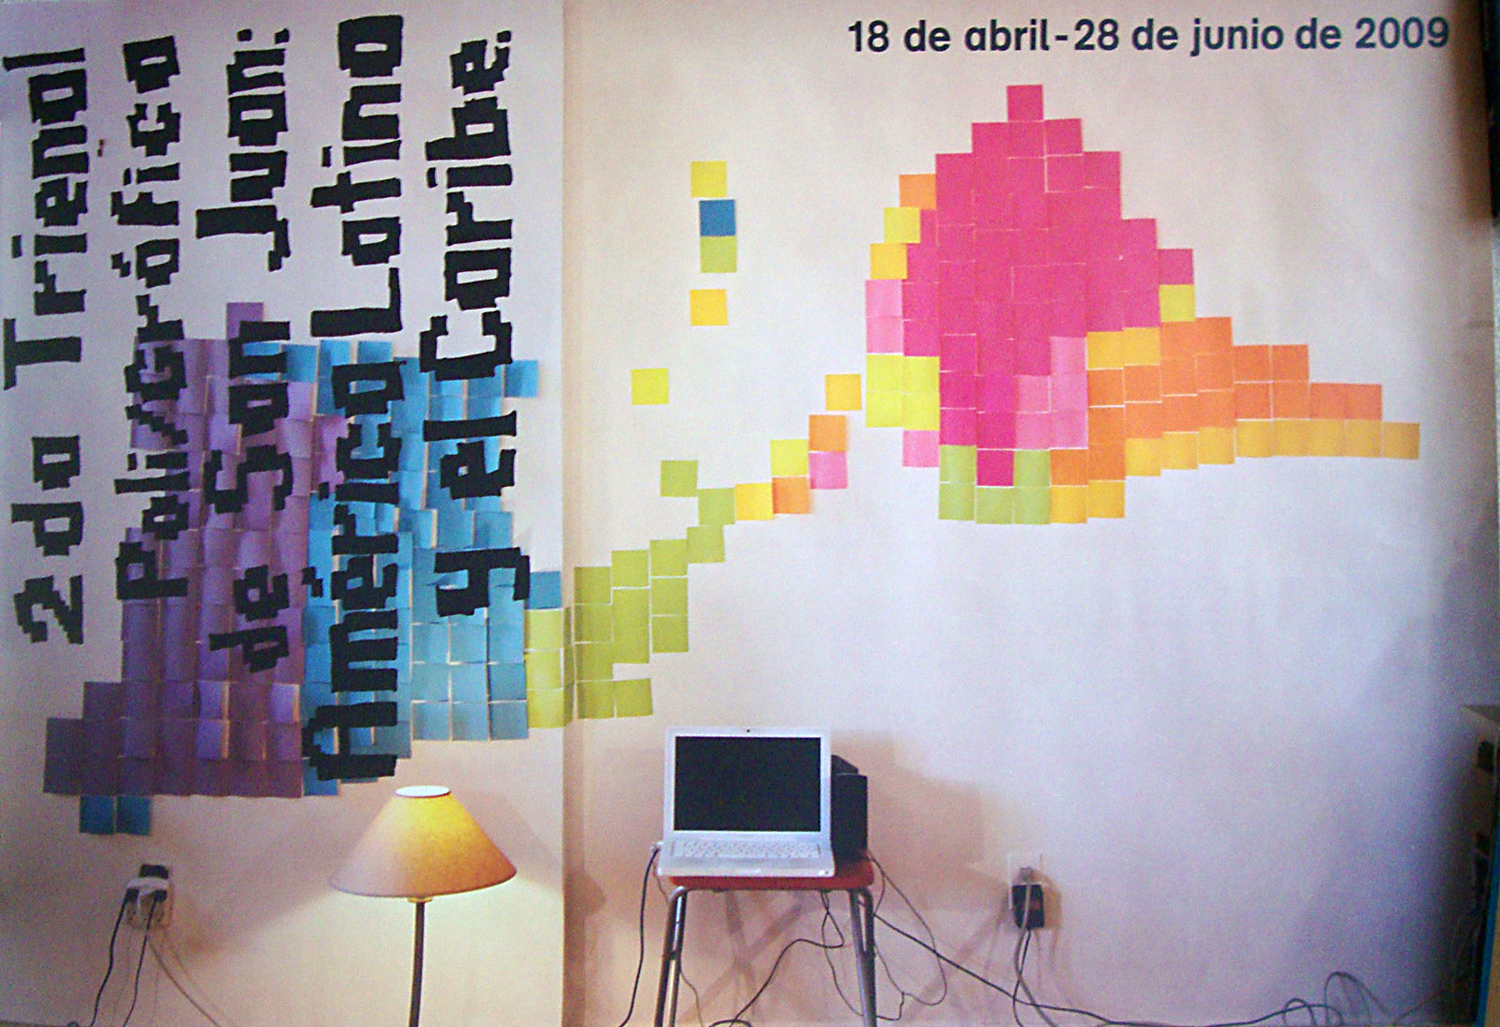 Poster for Triennial Arts event